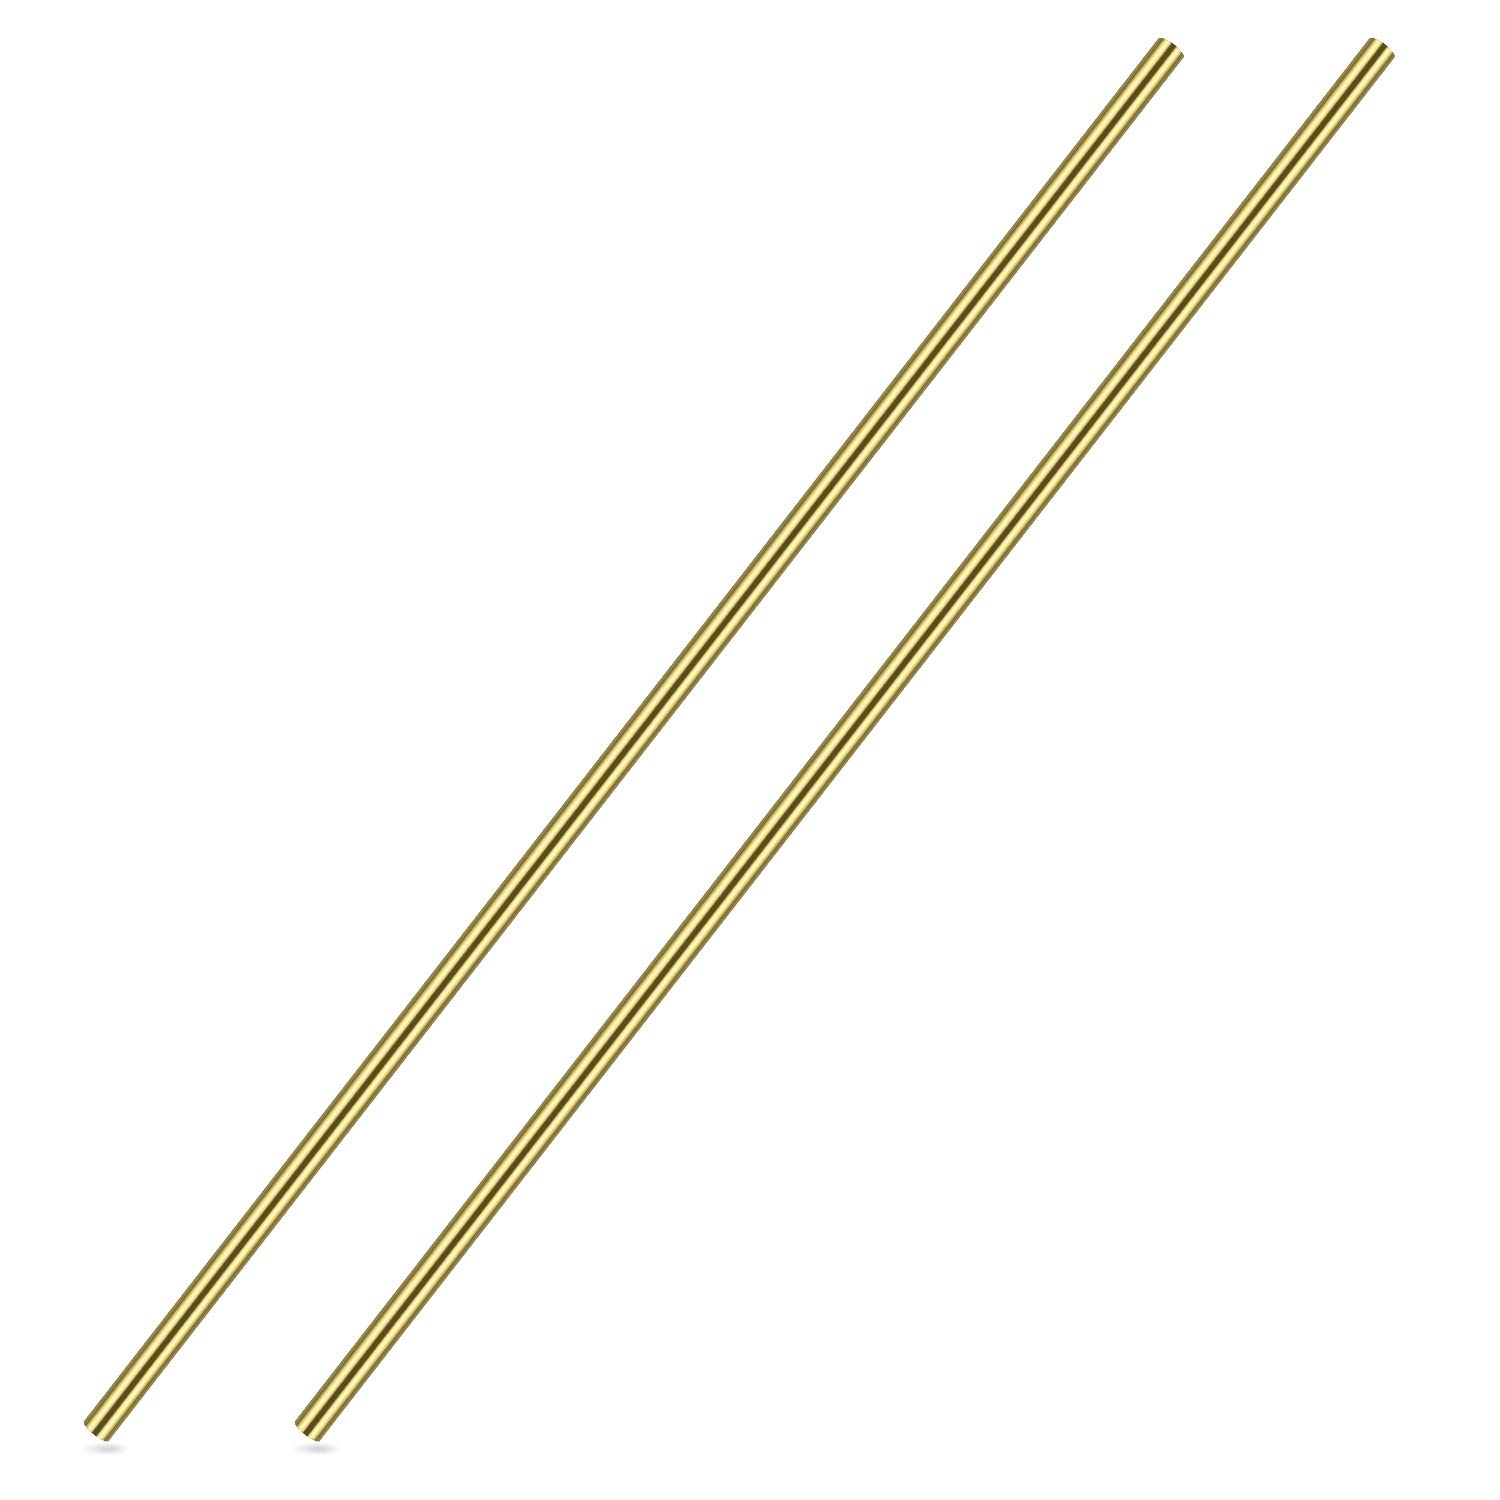 1/4 Inch Brass Round Rod, Favordrory 2PCS Brass Round Rods Lathe Bar Stock, 1/4 Inch in Diameter 14 Inch in Length 61DEc7PzqEL